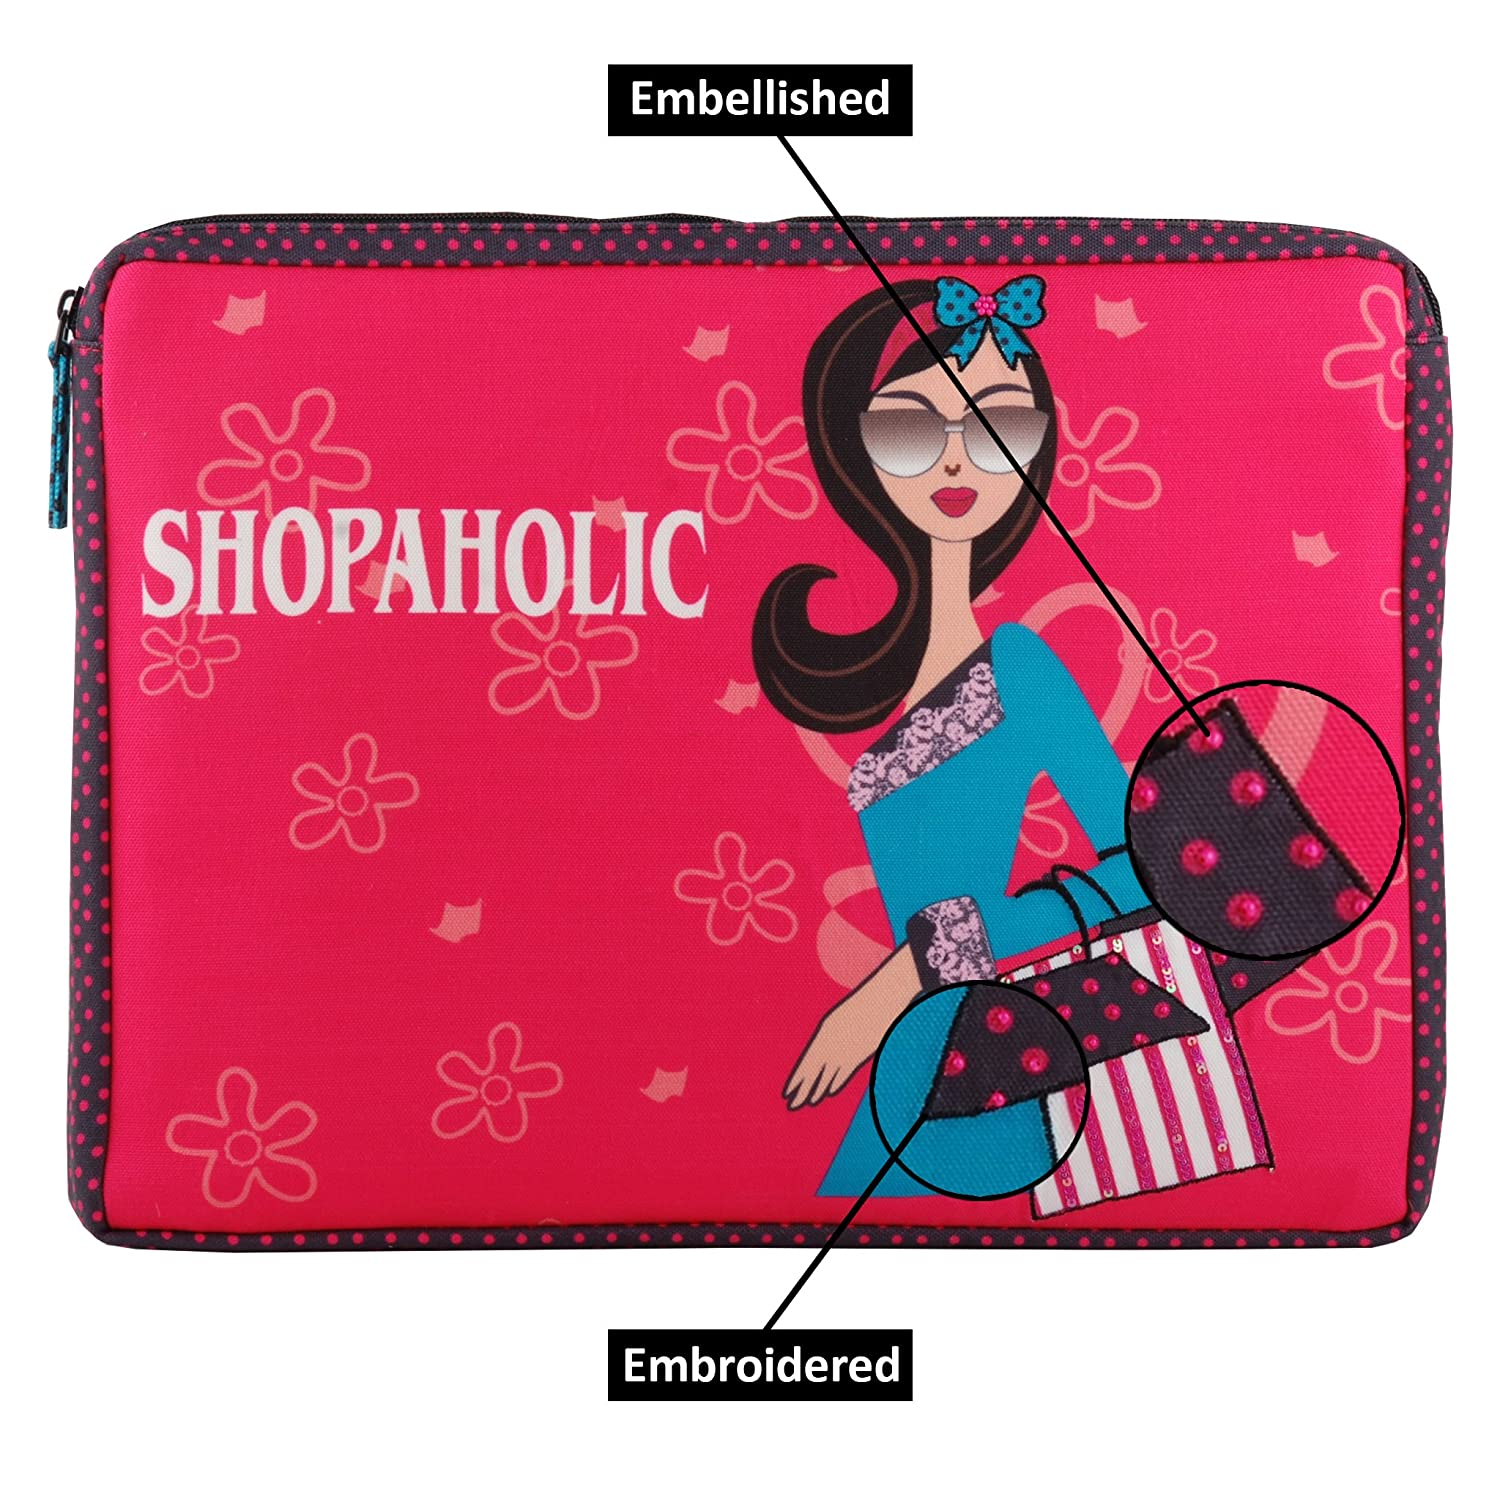 c9cfcb4a33f88 Laptop sleeve multicolor shockproof with additional zipper sleeve at the  back for Macbook air Dell Toshiba Sony Samsung Acer Hp Chromebooknotebook  Ipad pro ...